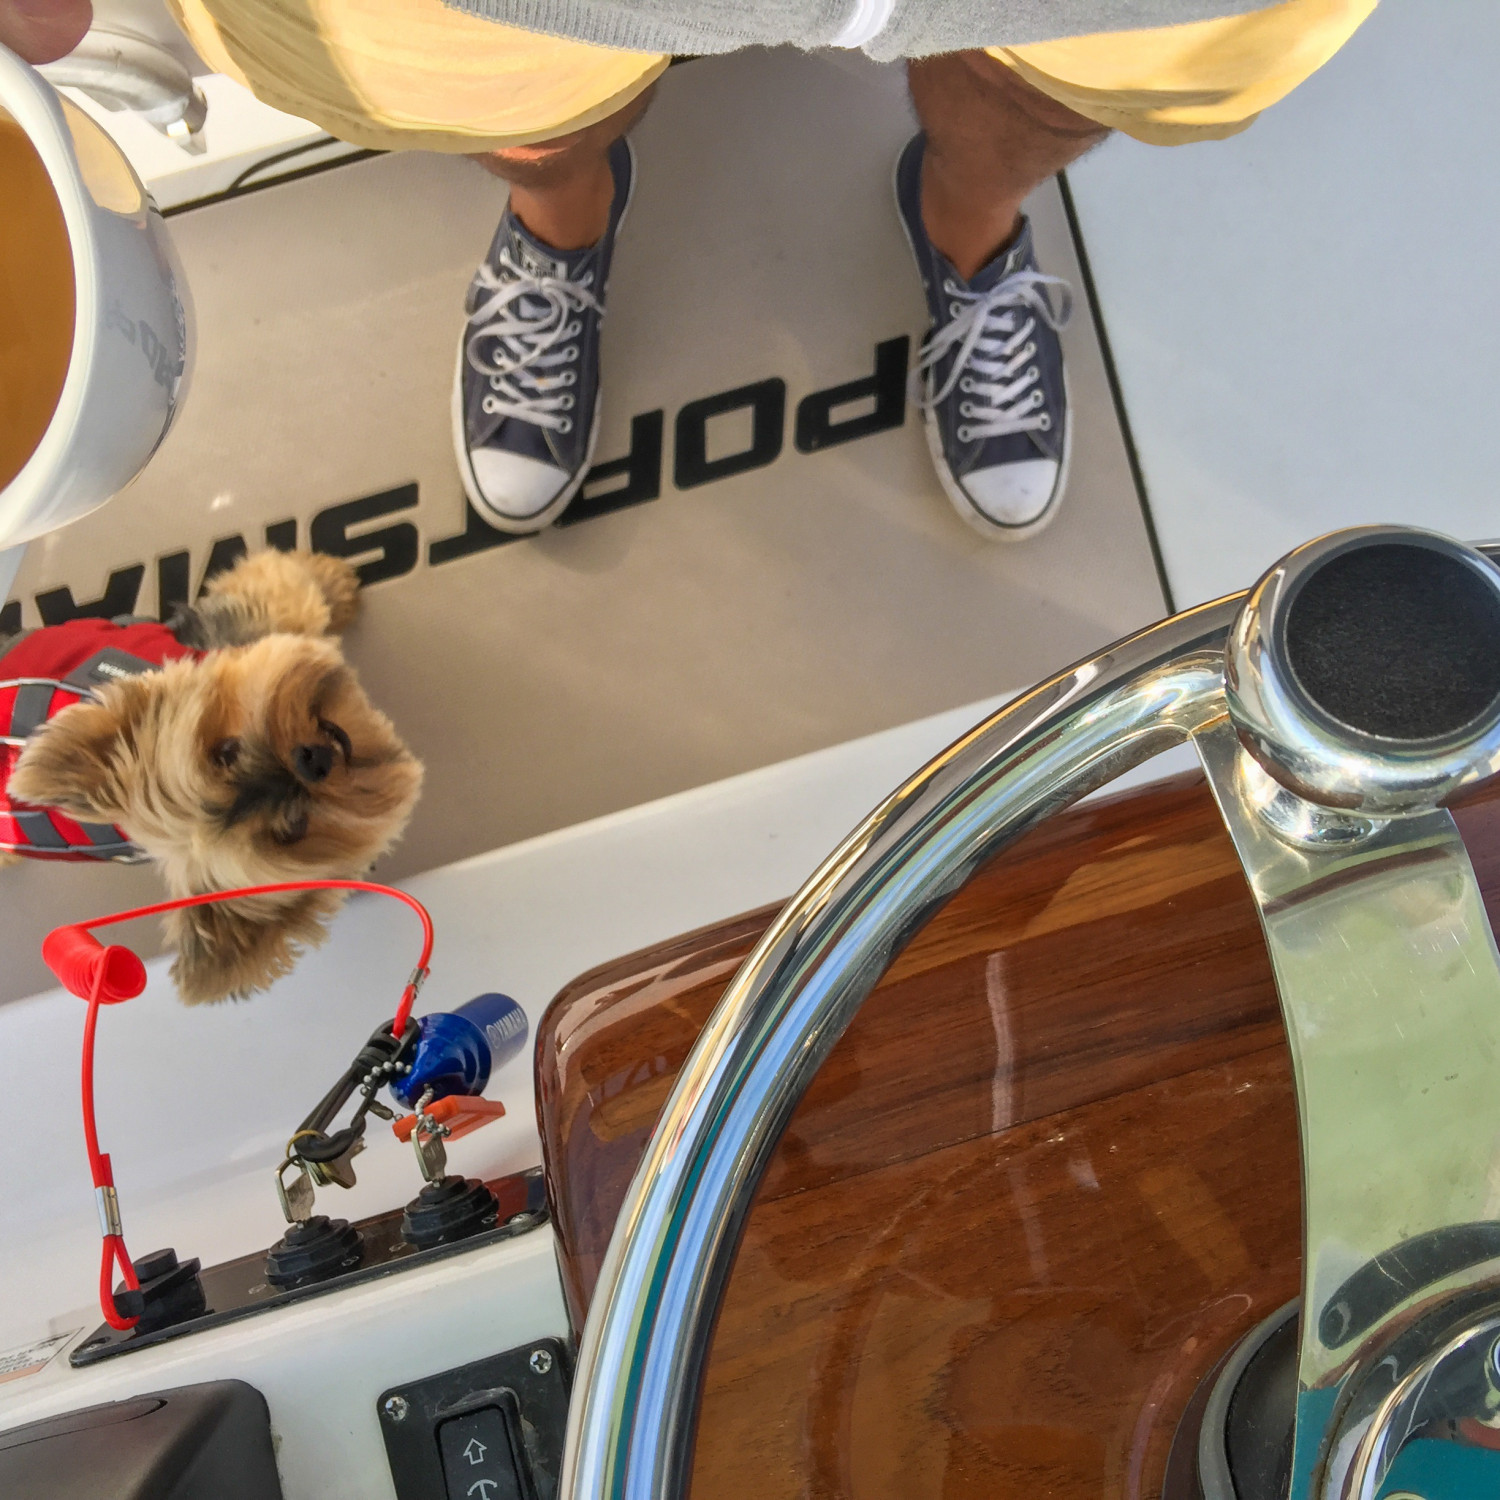 Title: sailors best friend - On board their Sportsman Heritage 251 Center Console - Location: Oakdale, NY. Participating in the Photo Contest #SportsmanJanuary2018